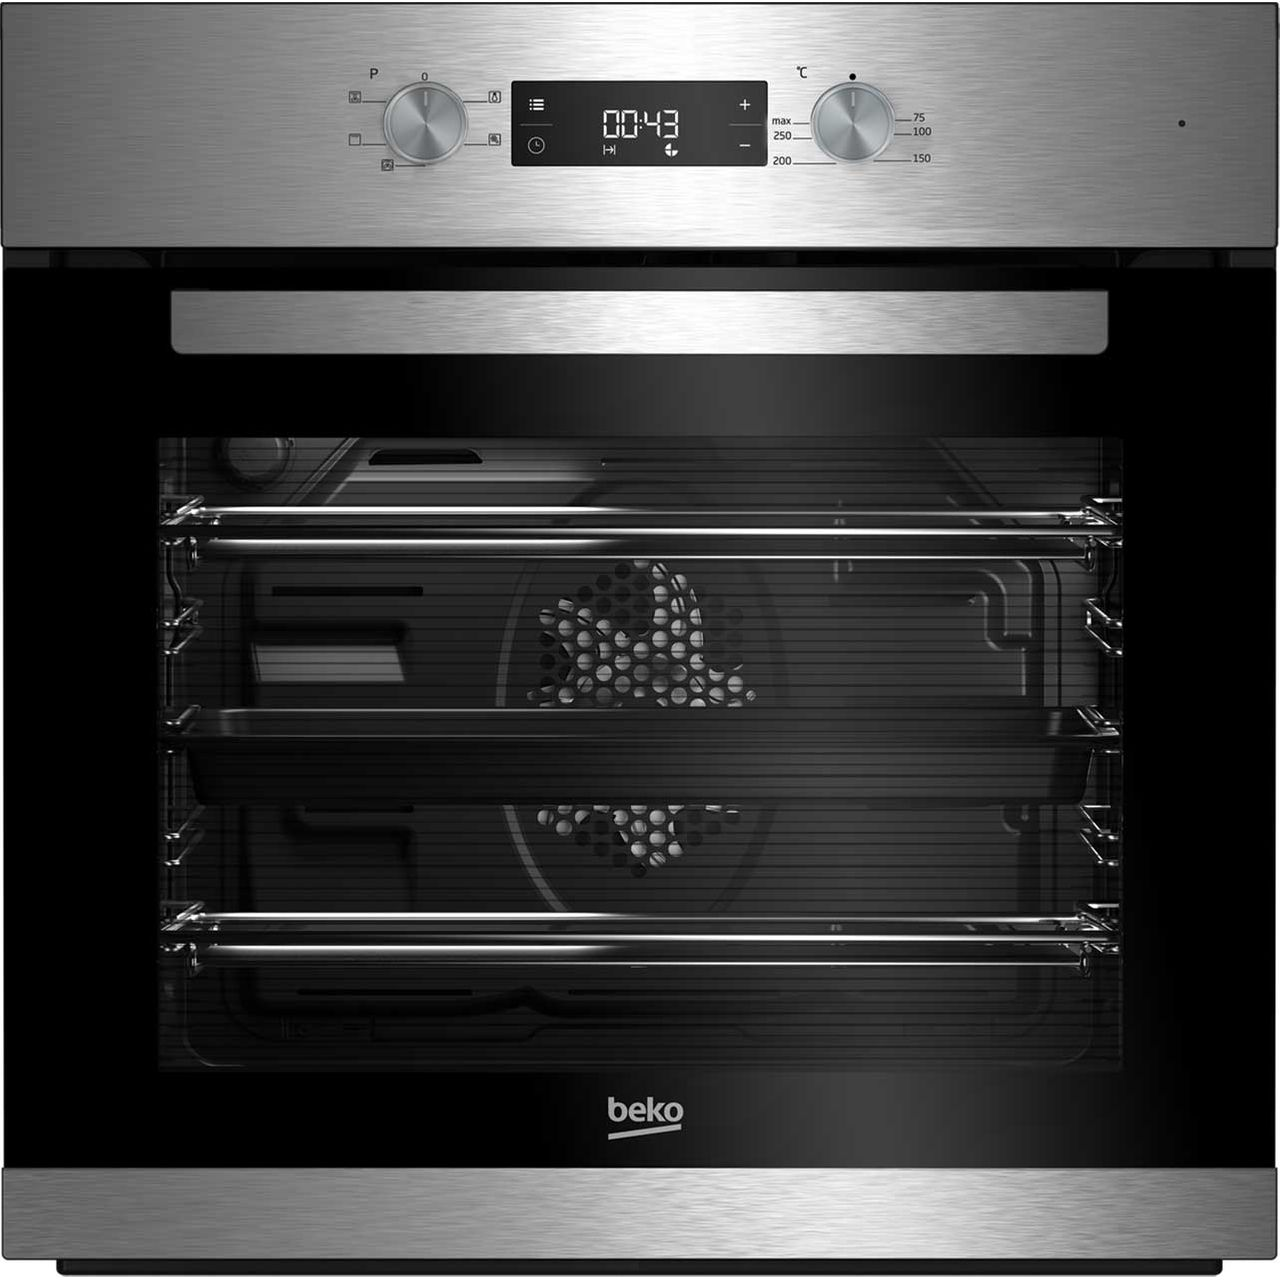 Beko EcoSmart BRIF22300X Built In Electric Single Oven - Stainless Steel